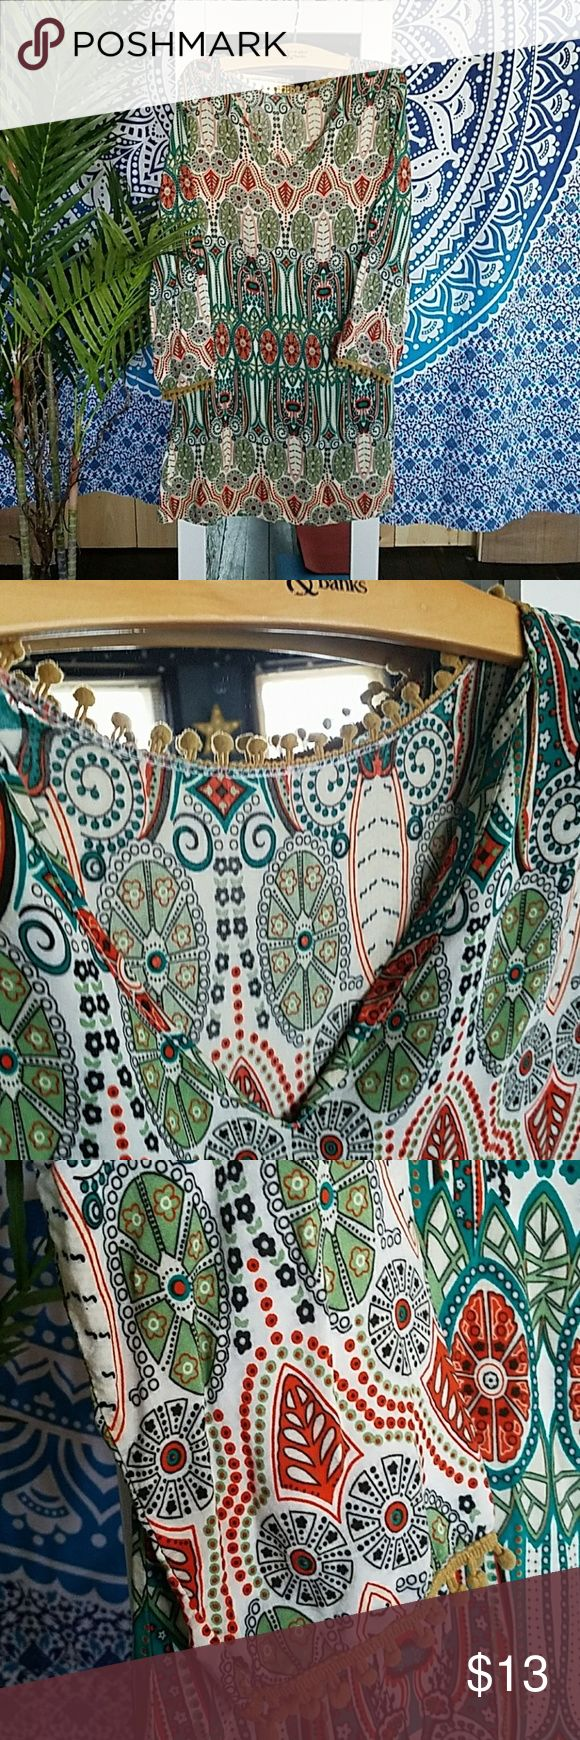 Boho festival dress💕 Amy Fashion 💕 boutique boho festival💕 dress💕 flowing and lightweight💕 beautiful pattern💕 v-neck💕 long sleeves💕 intricate ball crochet work adorns the sleeves💕 and around the back of collar💕 so unique💕 worn once but was too big💕 Amy Fashion Dresses